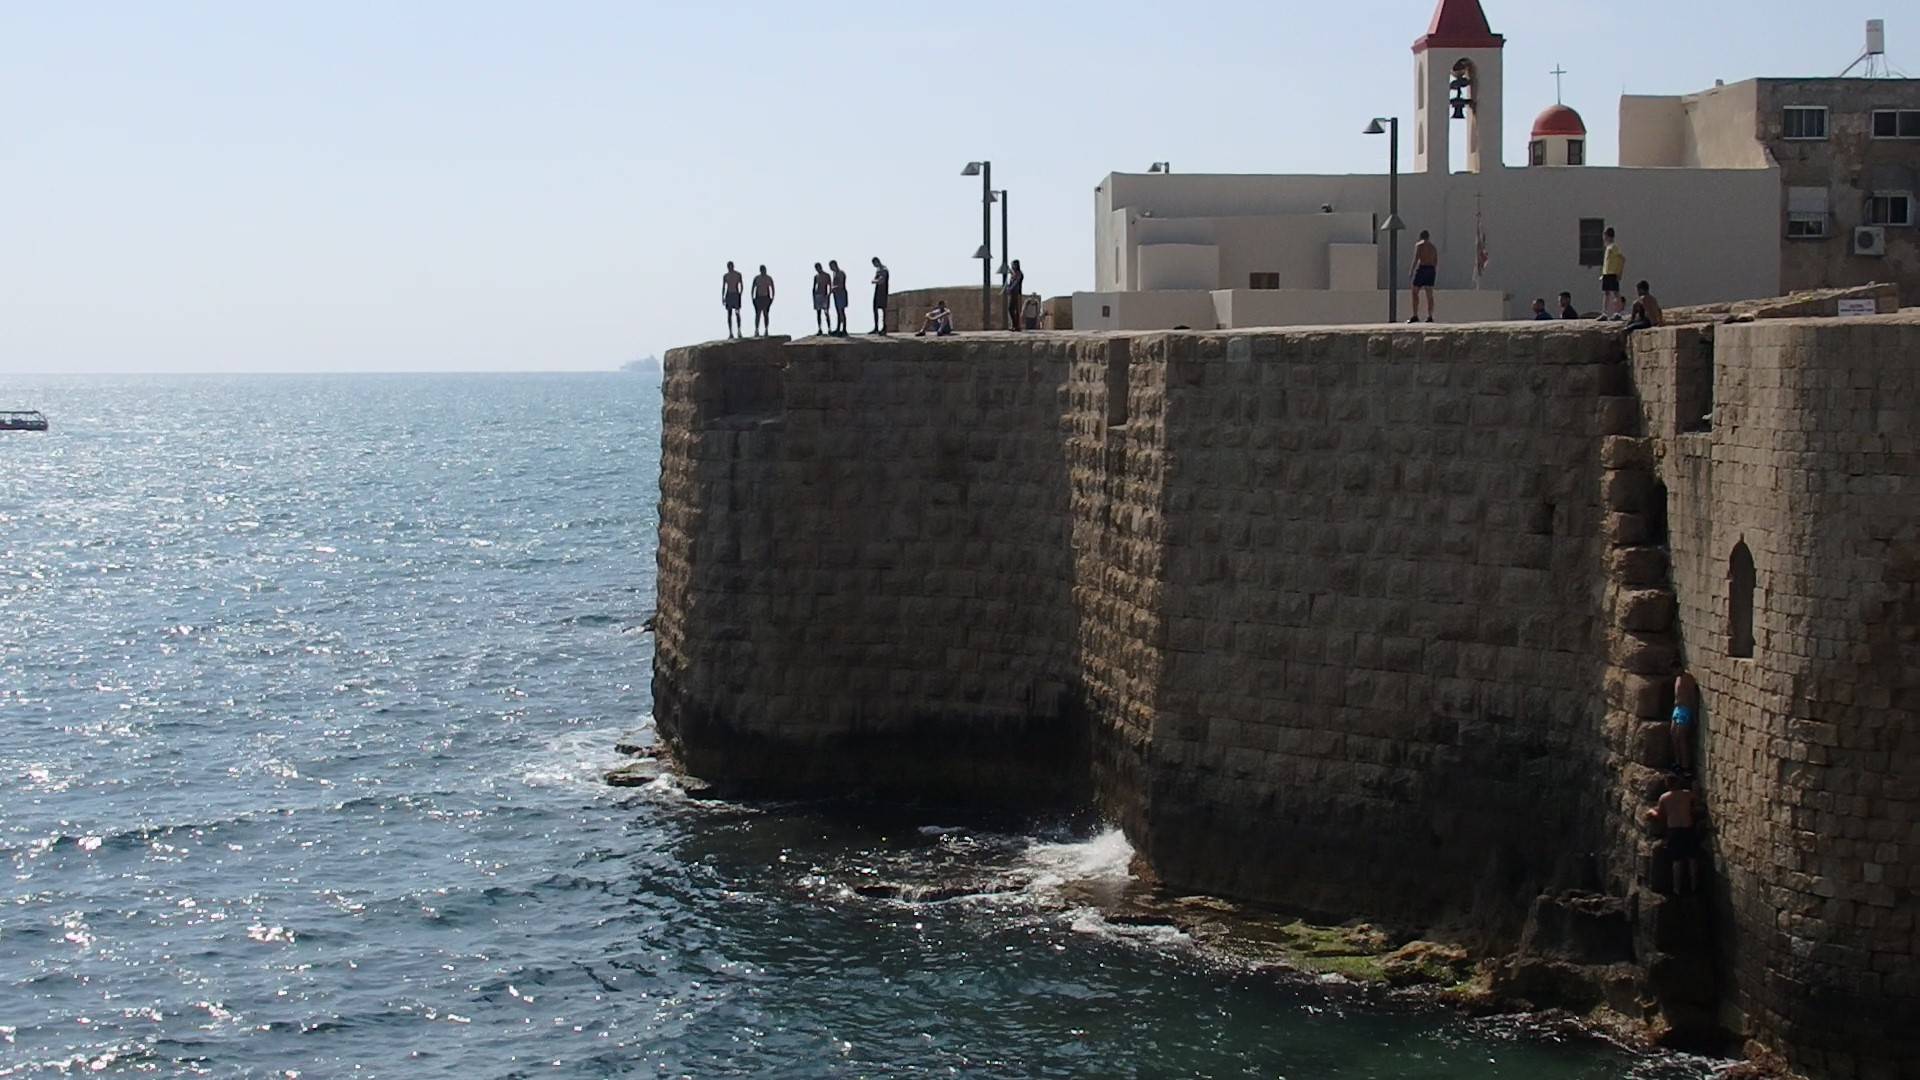 A view of the wall around Akko old city. Notice the boys preparing to jump from the wall, and, on the bottom right, a couple of boys climbing up from the water.